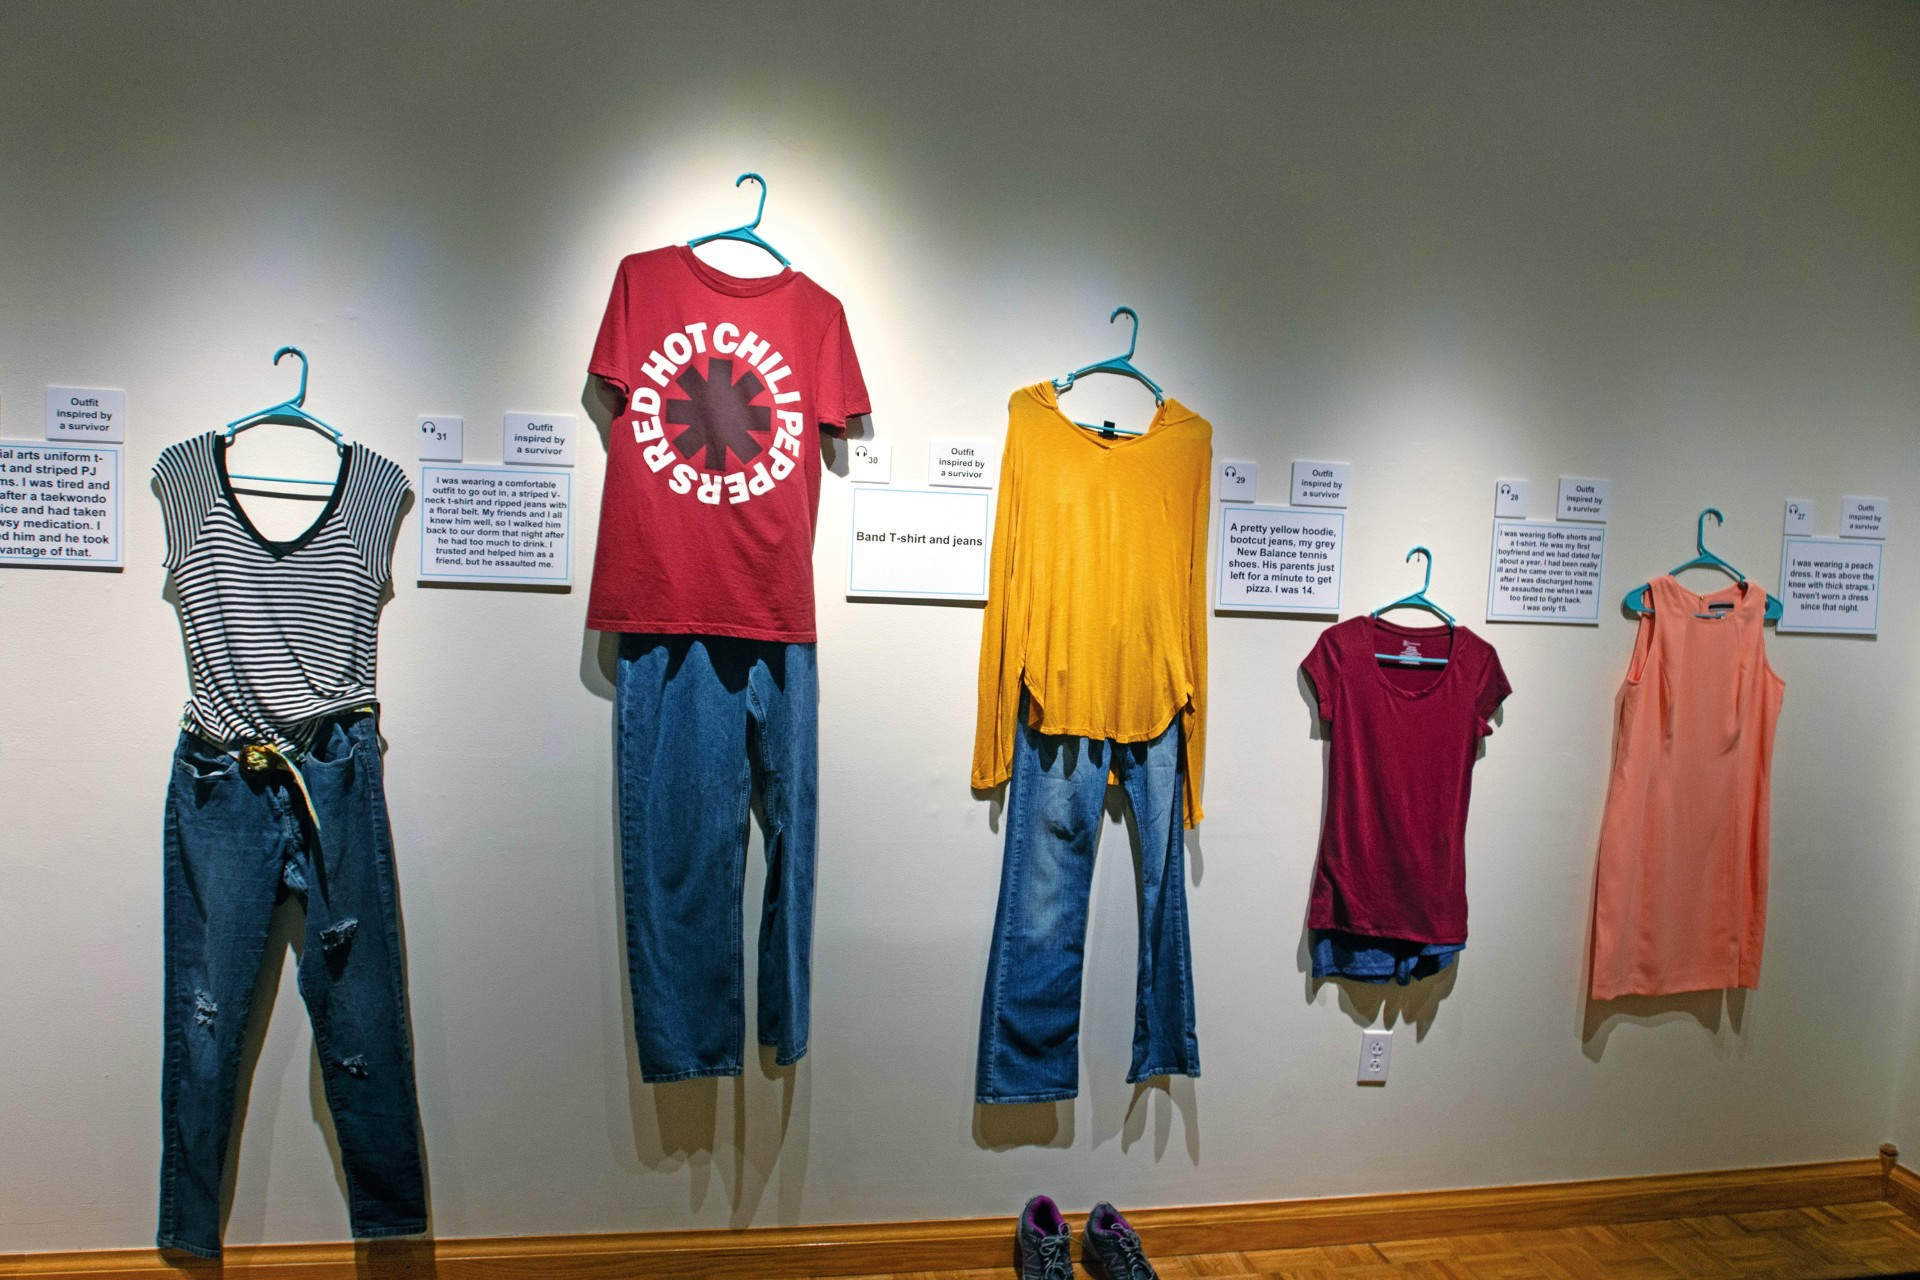 What Were You Wearing?': Art show focuses on sexual abuse survivors - The  Tribune | The Tribune